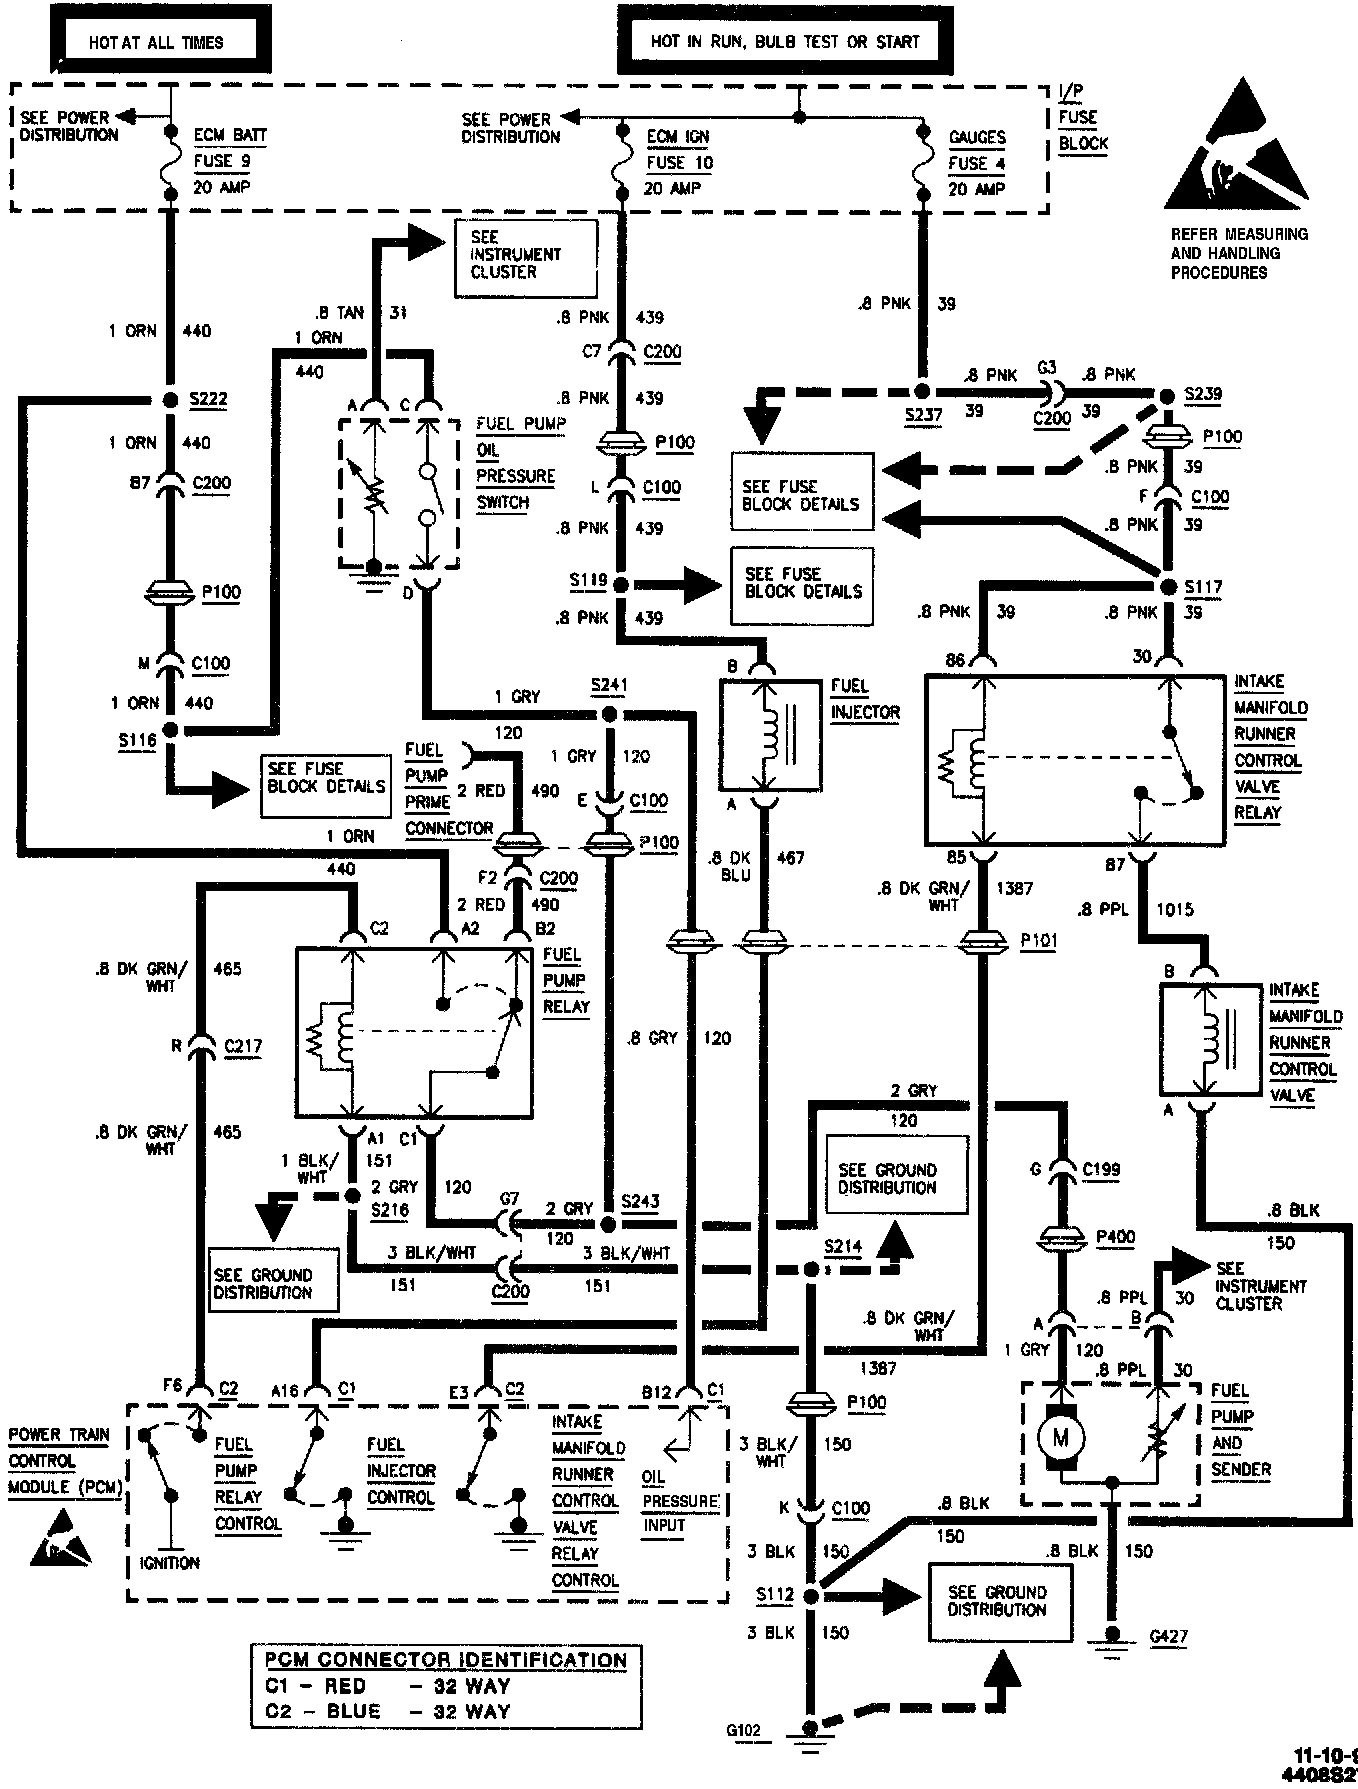 Wiring Diagram for An Electric Fuel Pump and Relay Fuel Electrical Fixed Really Long Please Read All Blazer Of Wiring Diagram for An Electric Fuel Pump and Relay